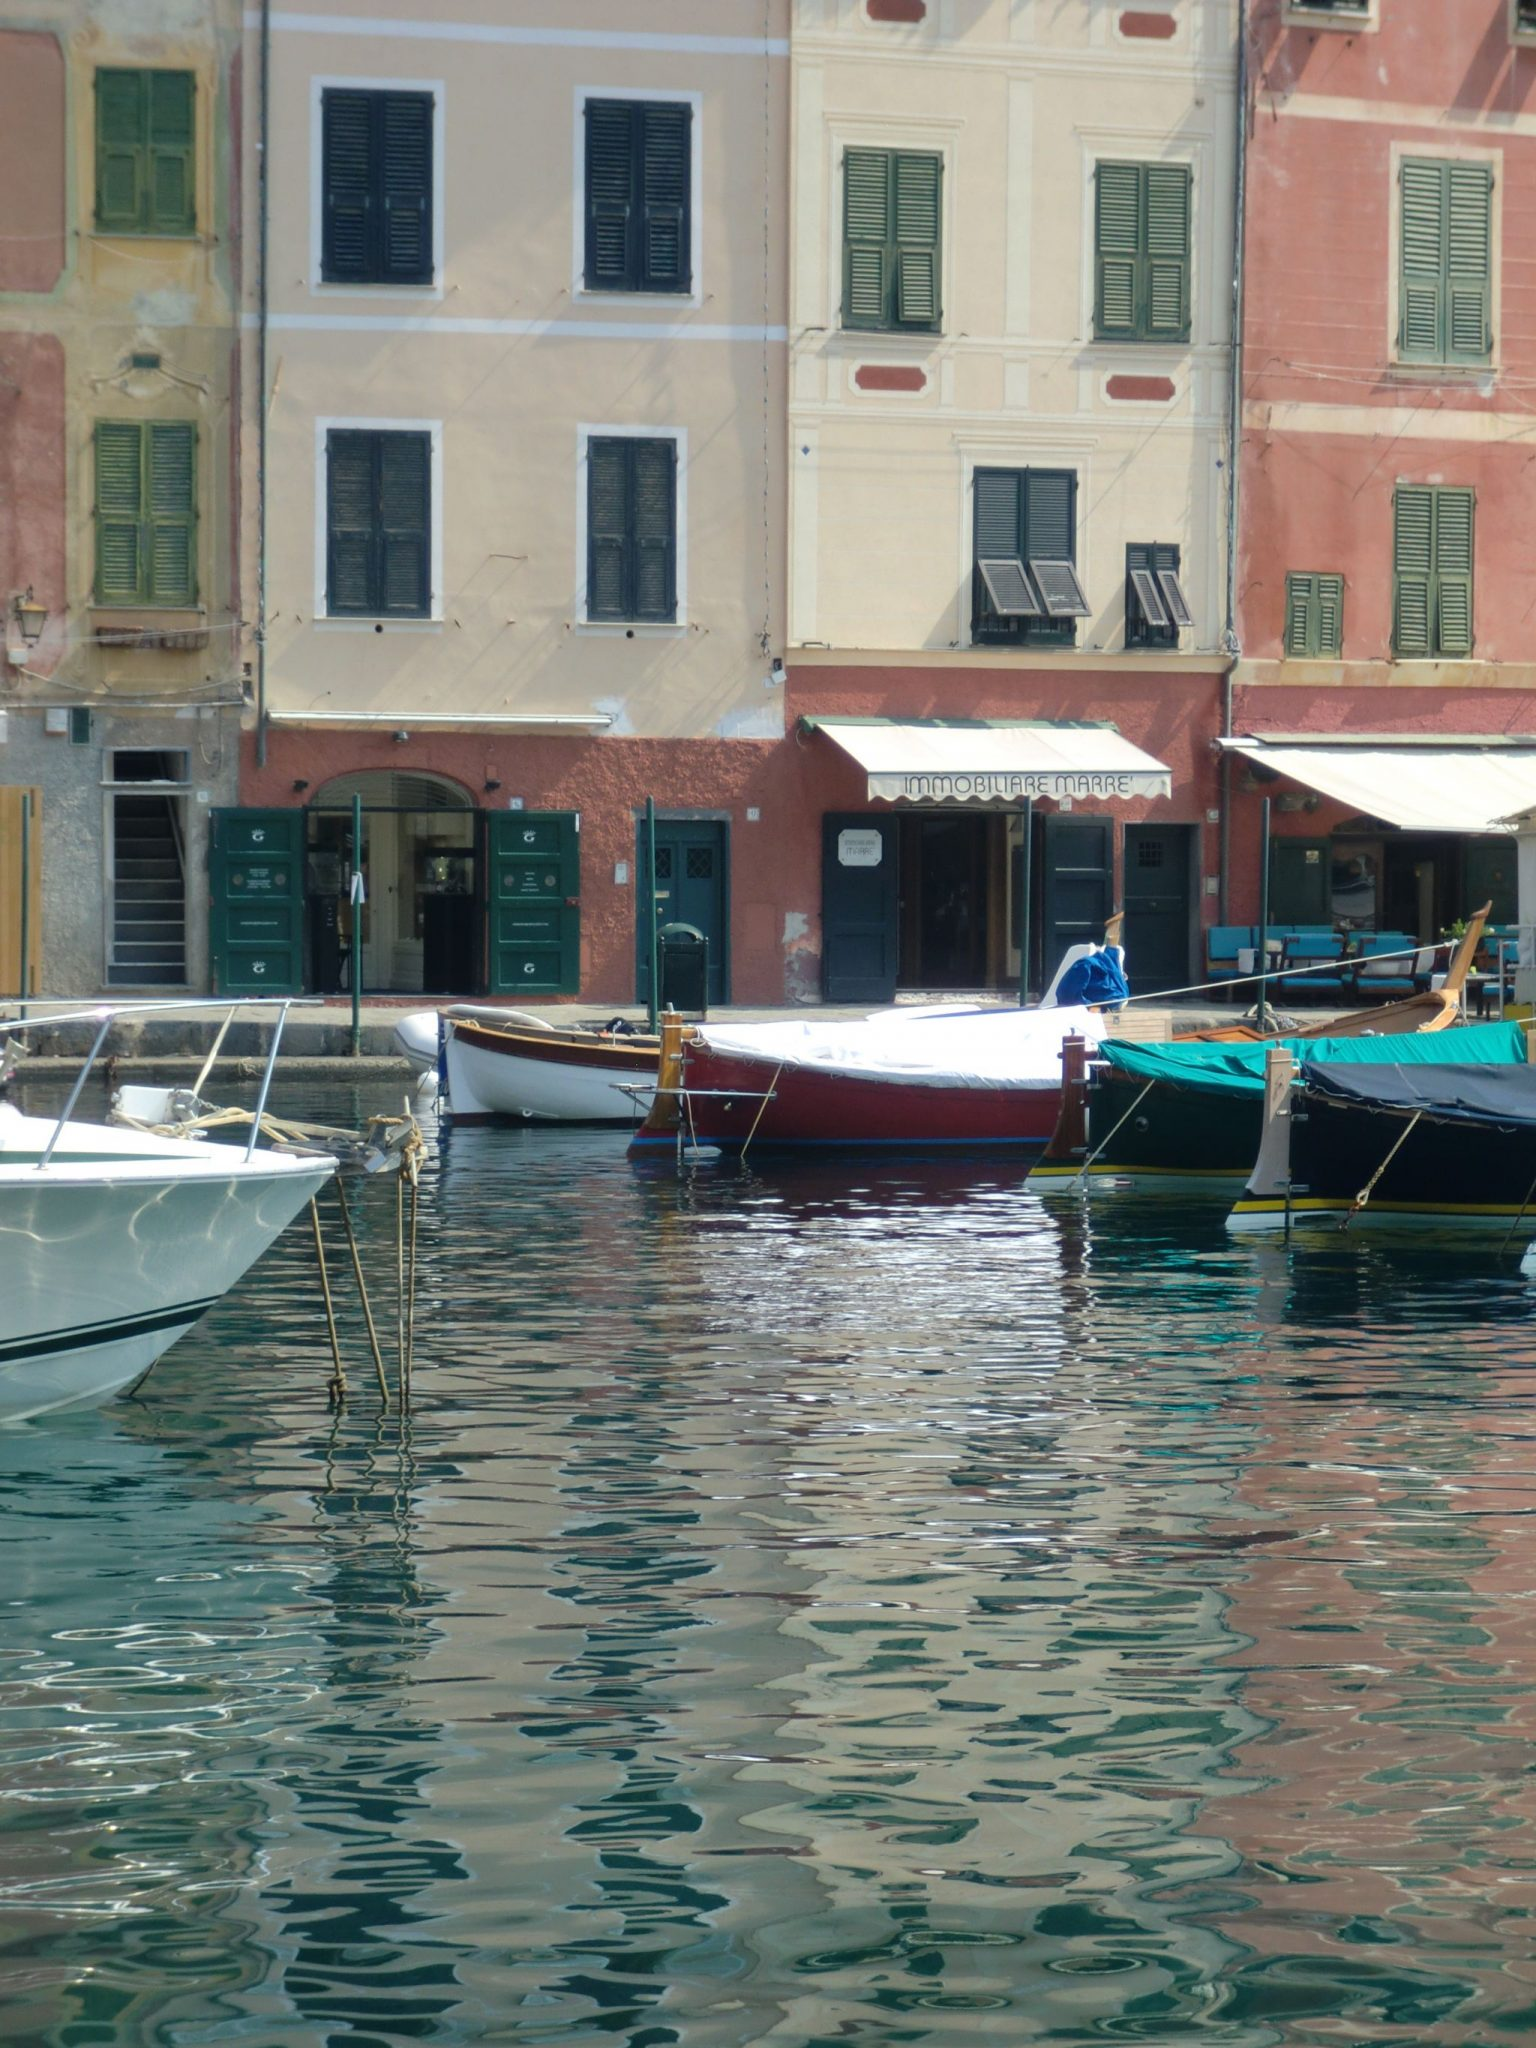 Portofino 11 - Portofino: a small pearl on the sea